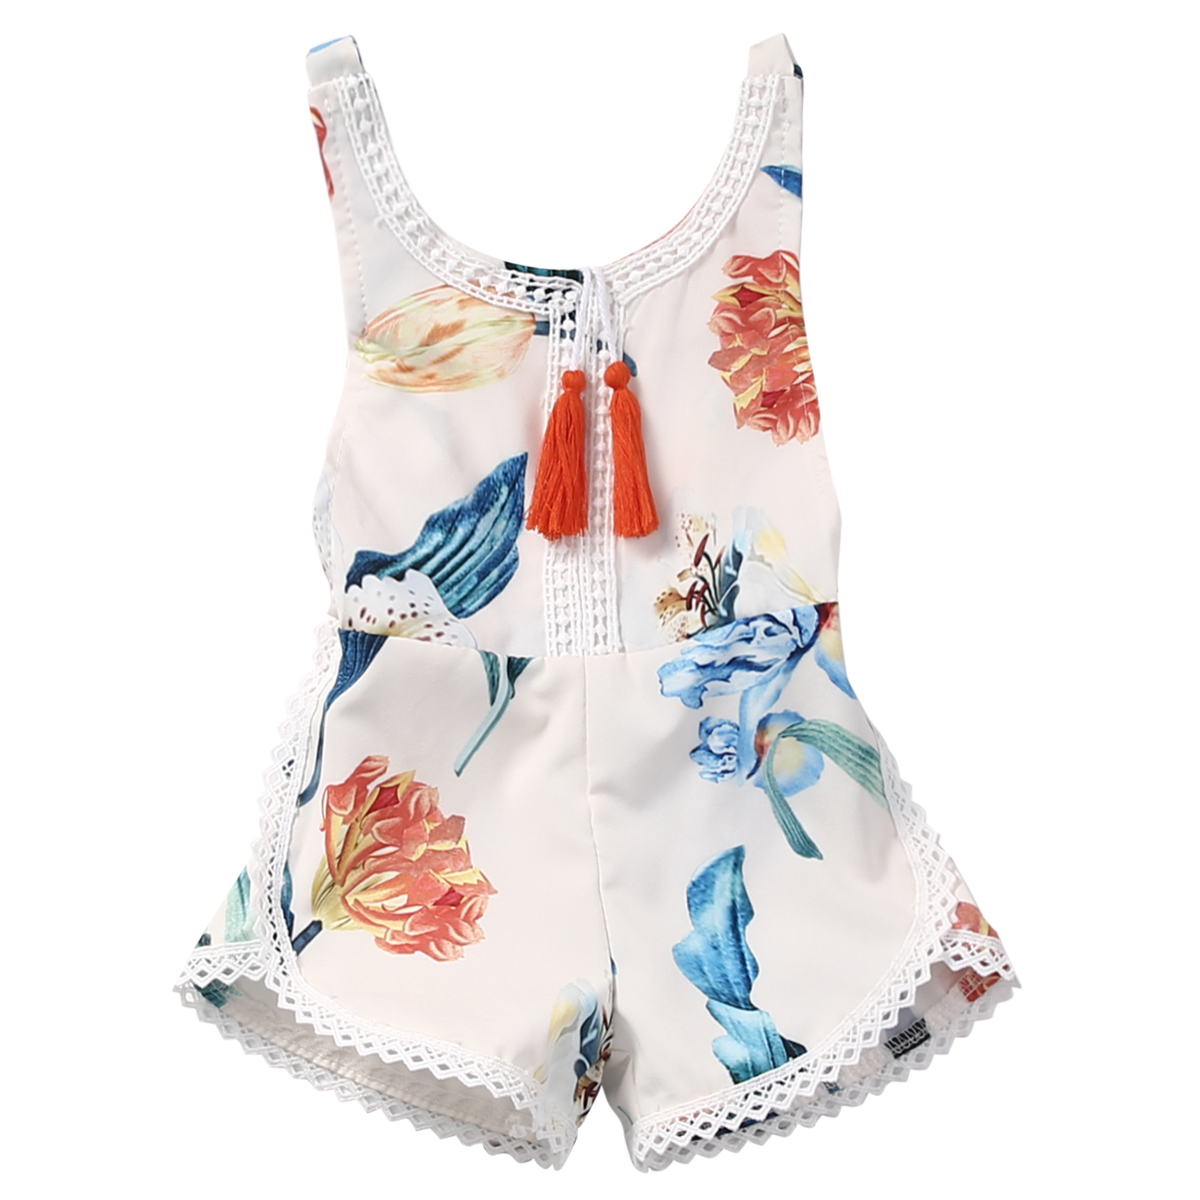 Floral Newborn Baby Girl Kids Sleeveless Flower Romper Jumpsuit Backless Cotton Sunsuit Outfits 2pcs set newborn floral baby girl clothes 2017 summer sleeveless cotton ruffles romper baby bodysuit headband outfits sunsuit